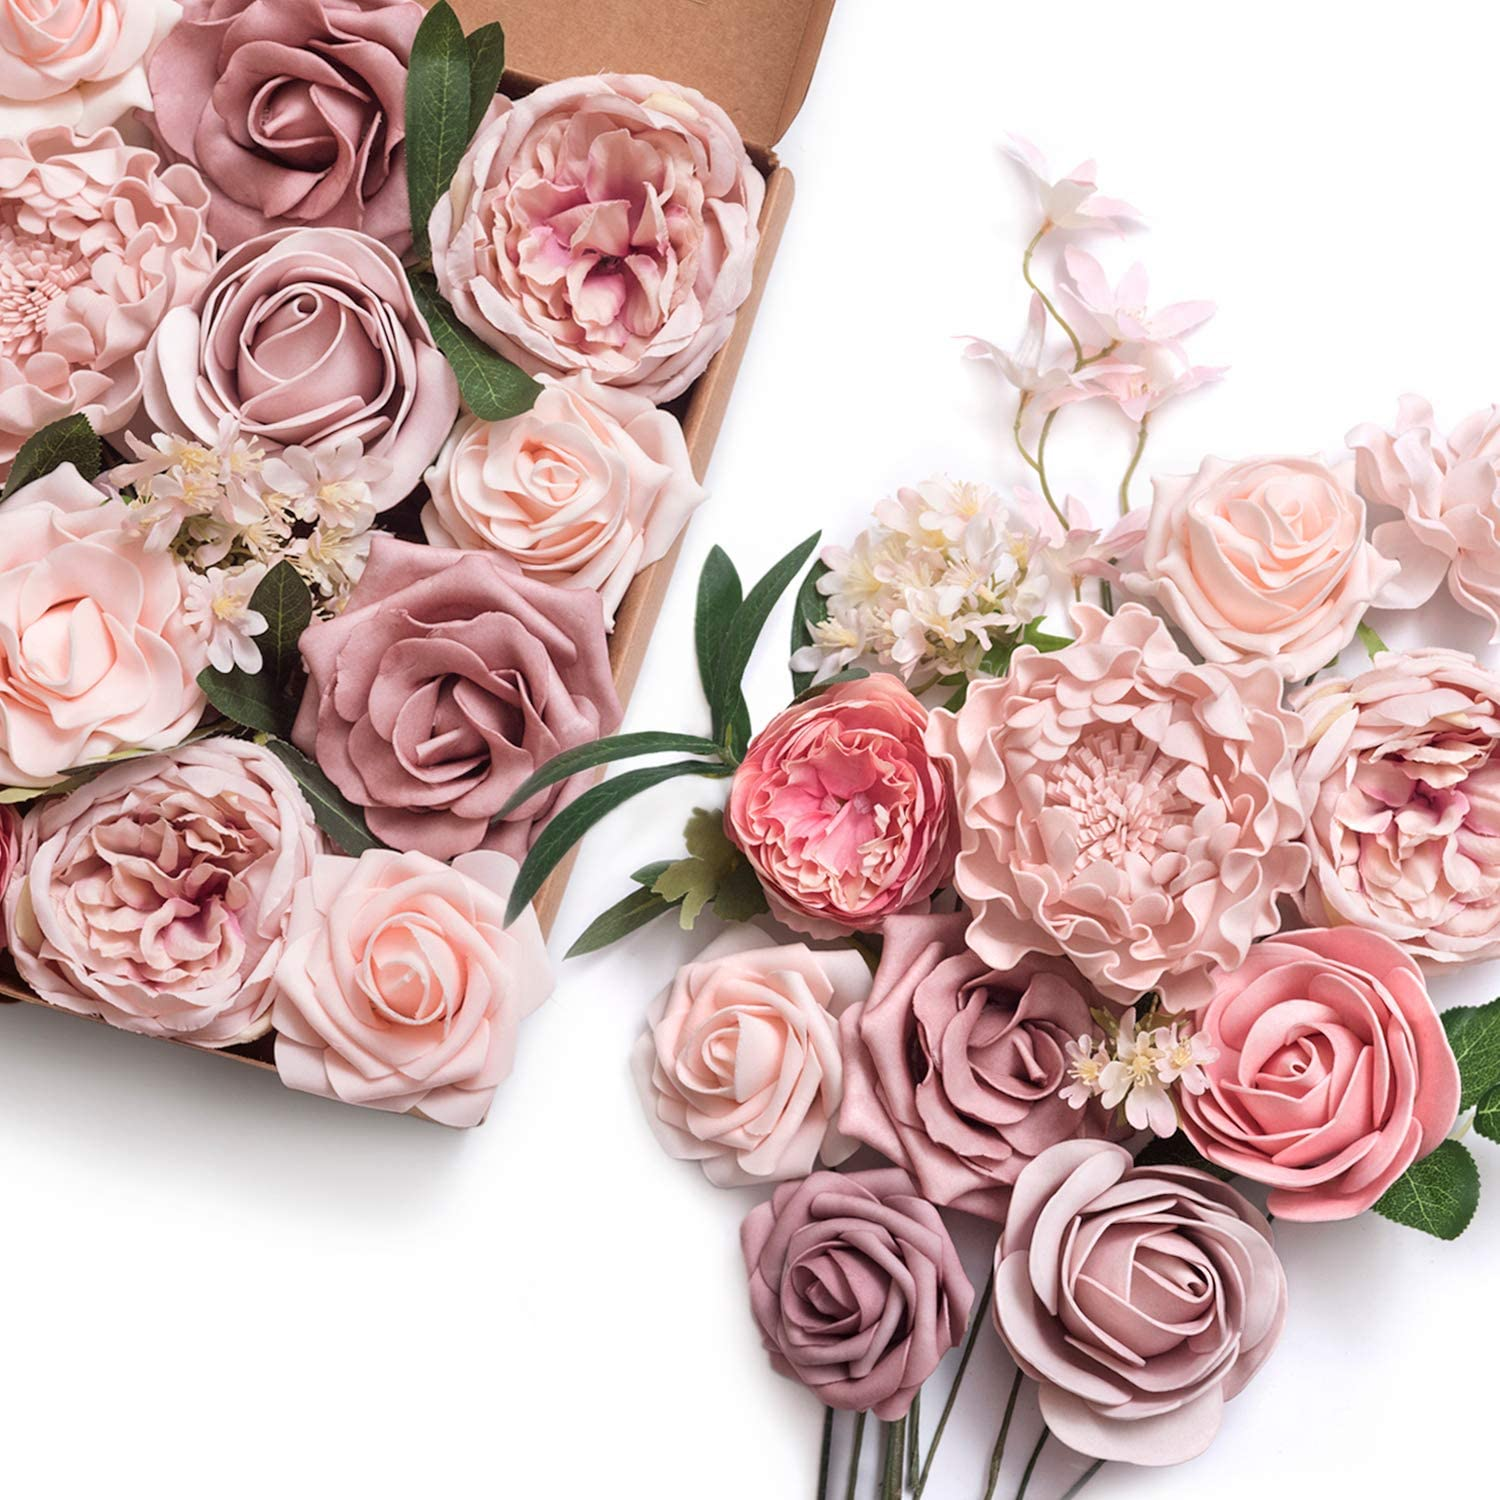 Ling's moment Artificial Flowers Combo for DIY Wedding Bouquets Centerpieces Arrangements Party Baby Shower Home Decorations (Athens Blush)